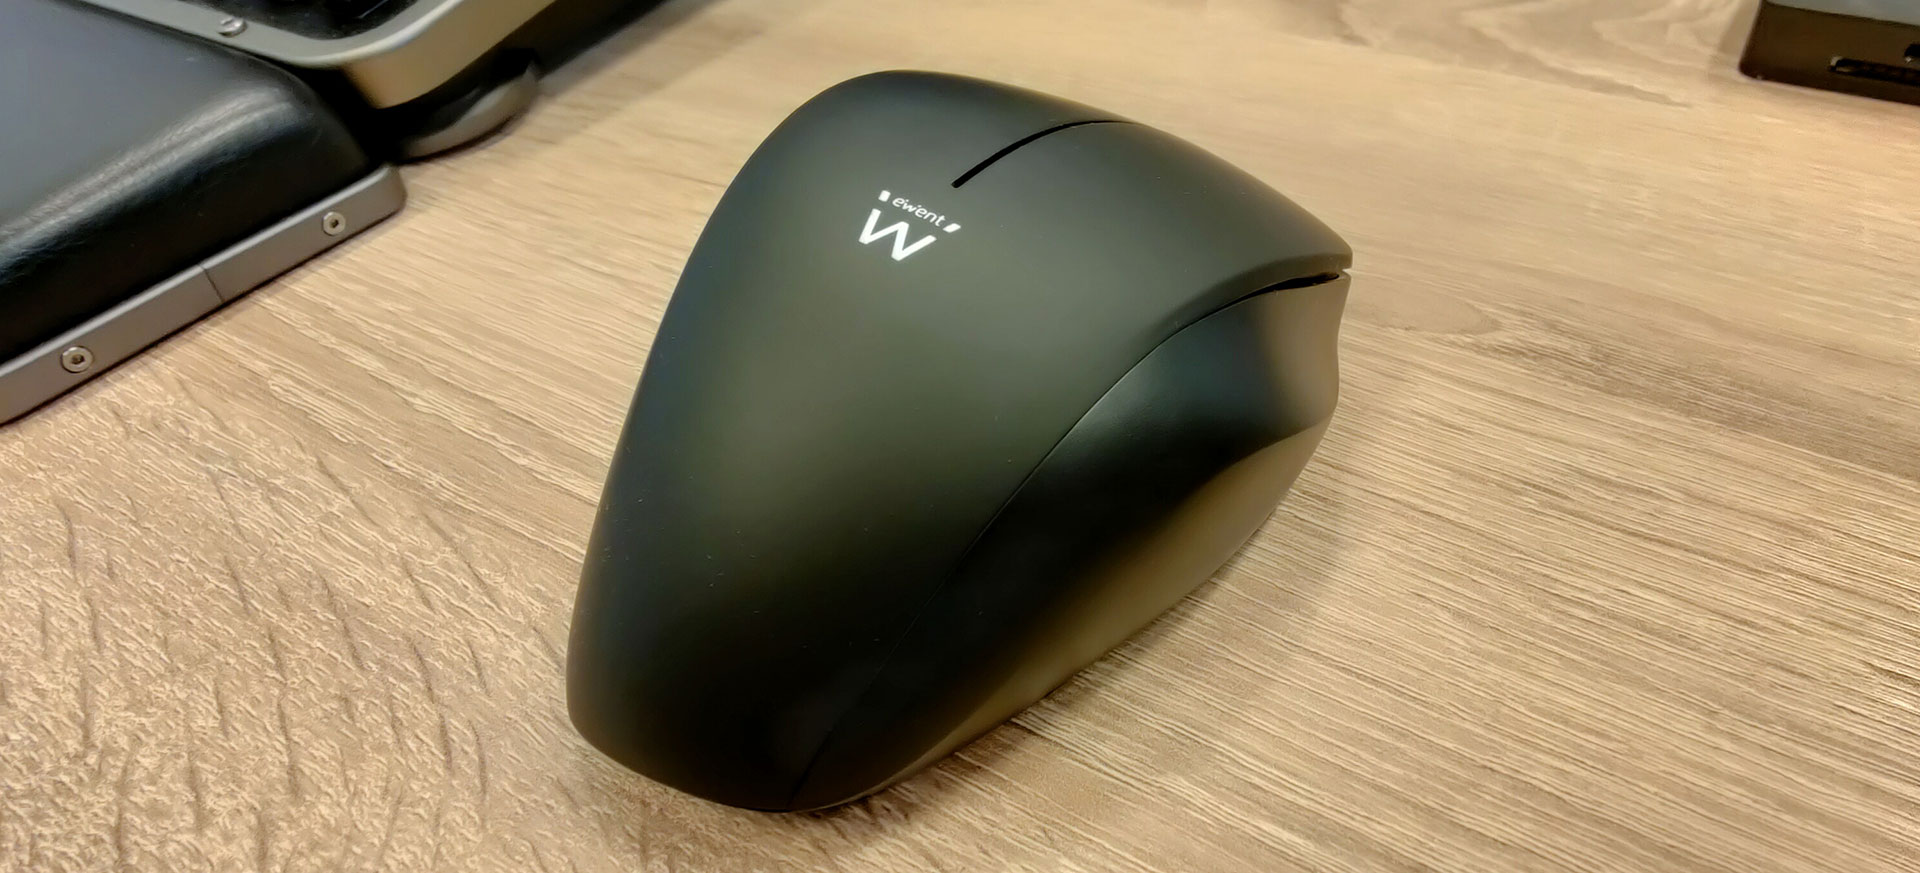 Ewent Ergonomic Mouse EW3151